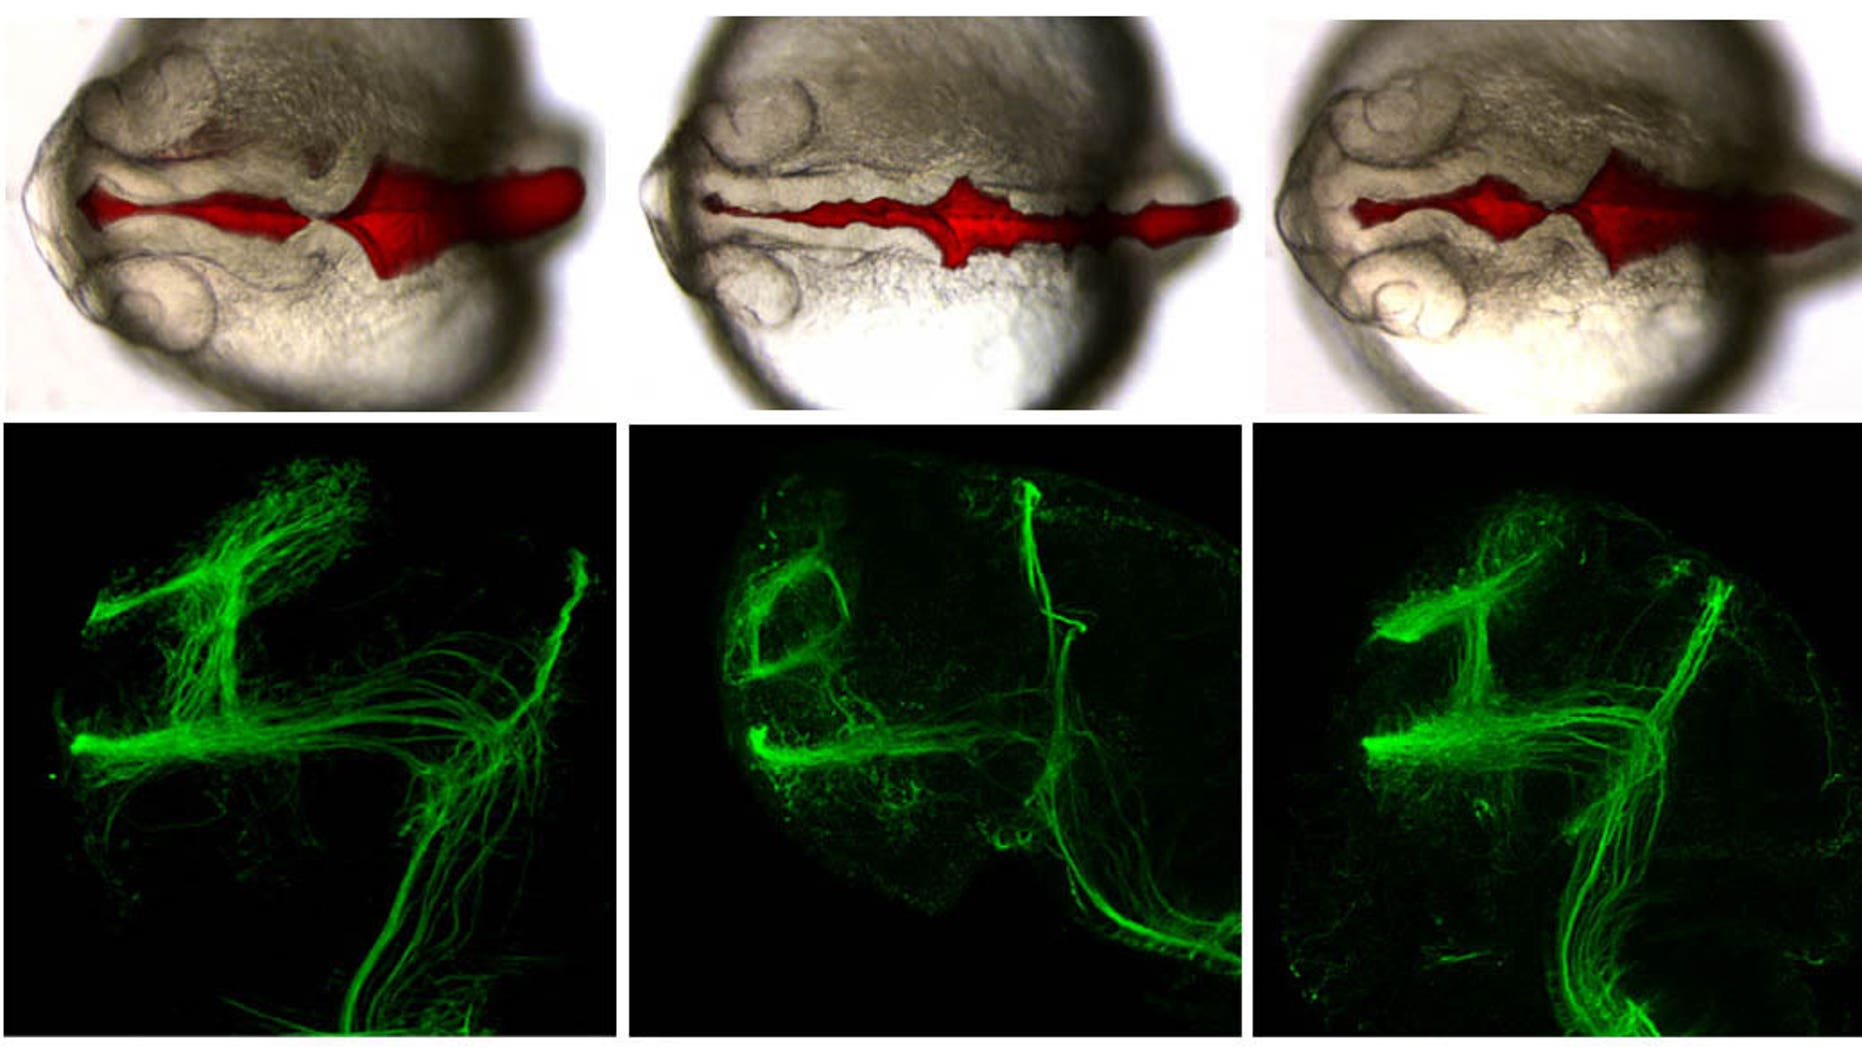 The control (left) shows no brain abnormalities in fish compared to when the autism-associated genes are repressed (center). The last picture shows a re-healed brain after human mRNA is added.